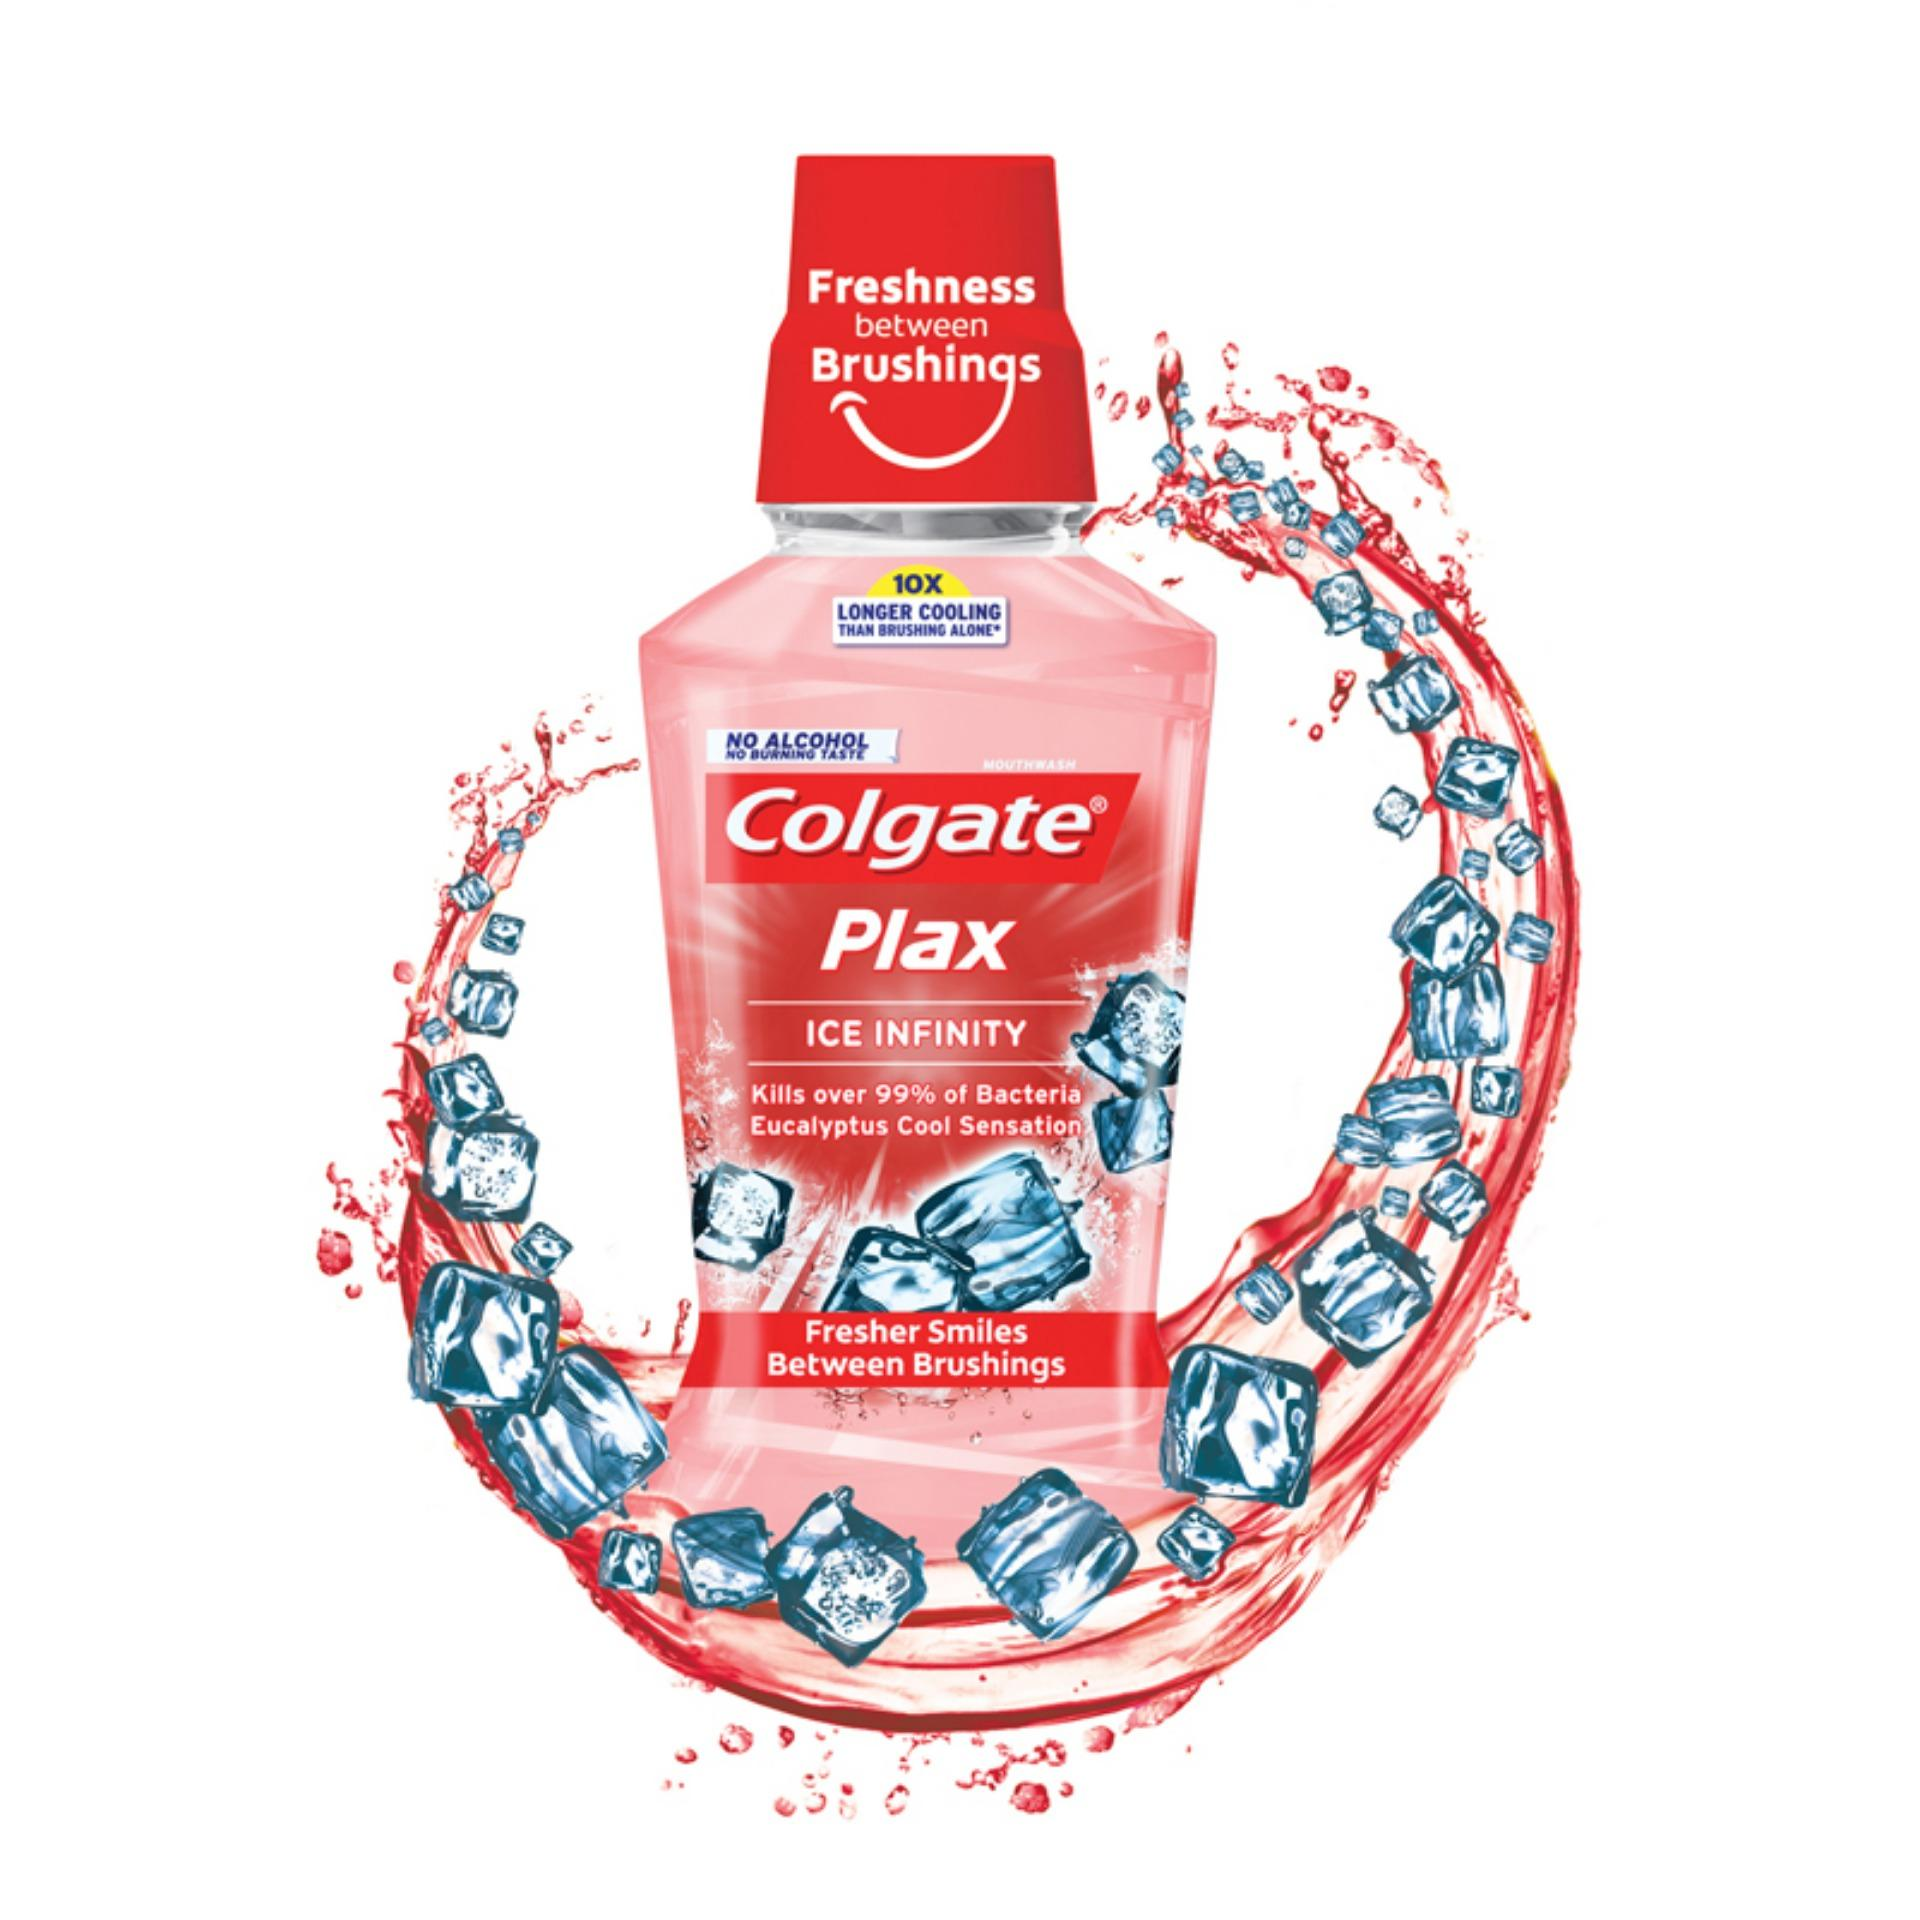 Colgate PLAX Ice Infinity (Red)